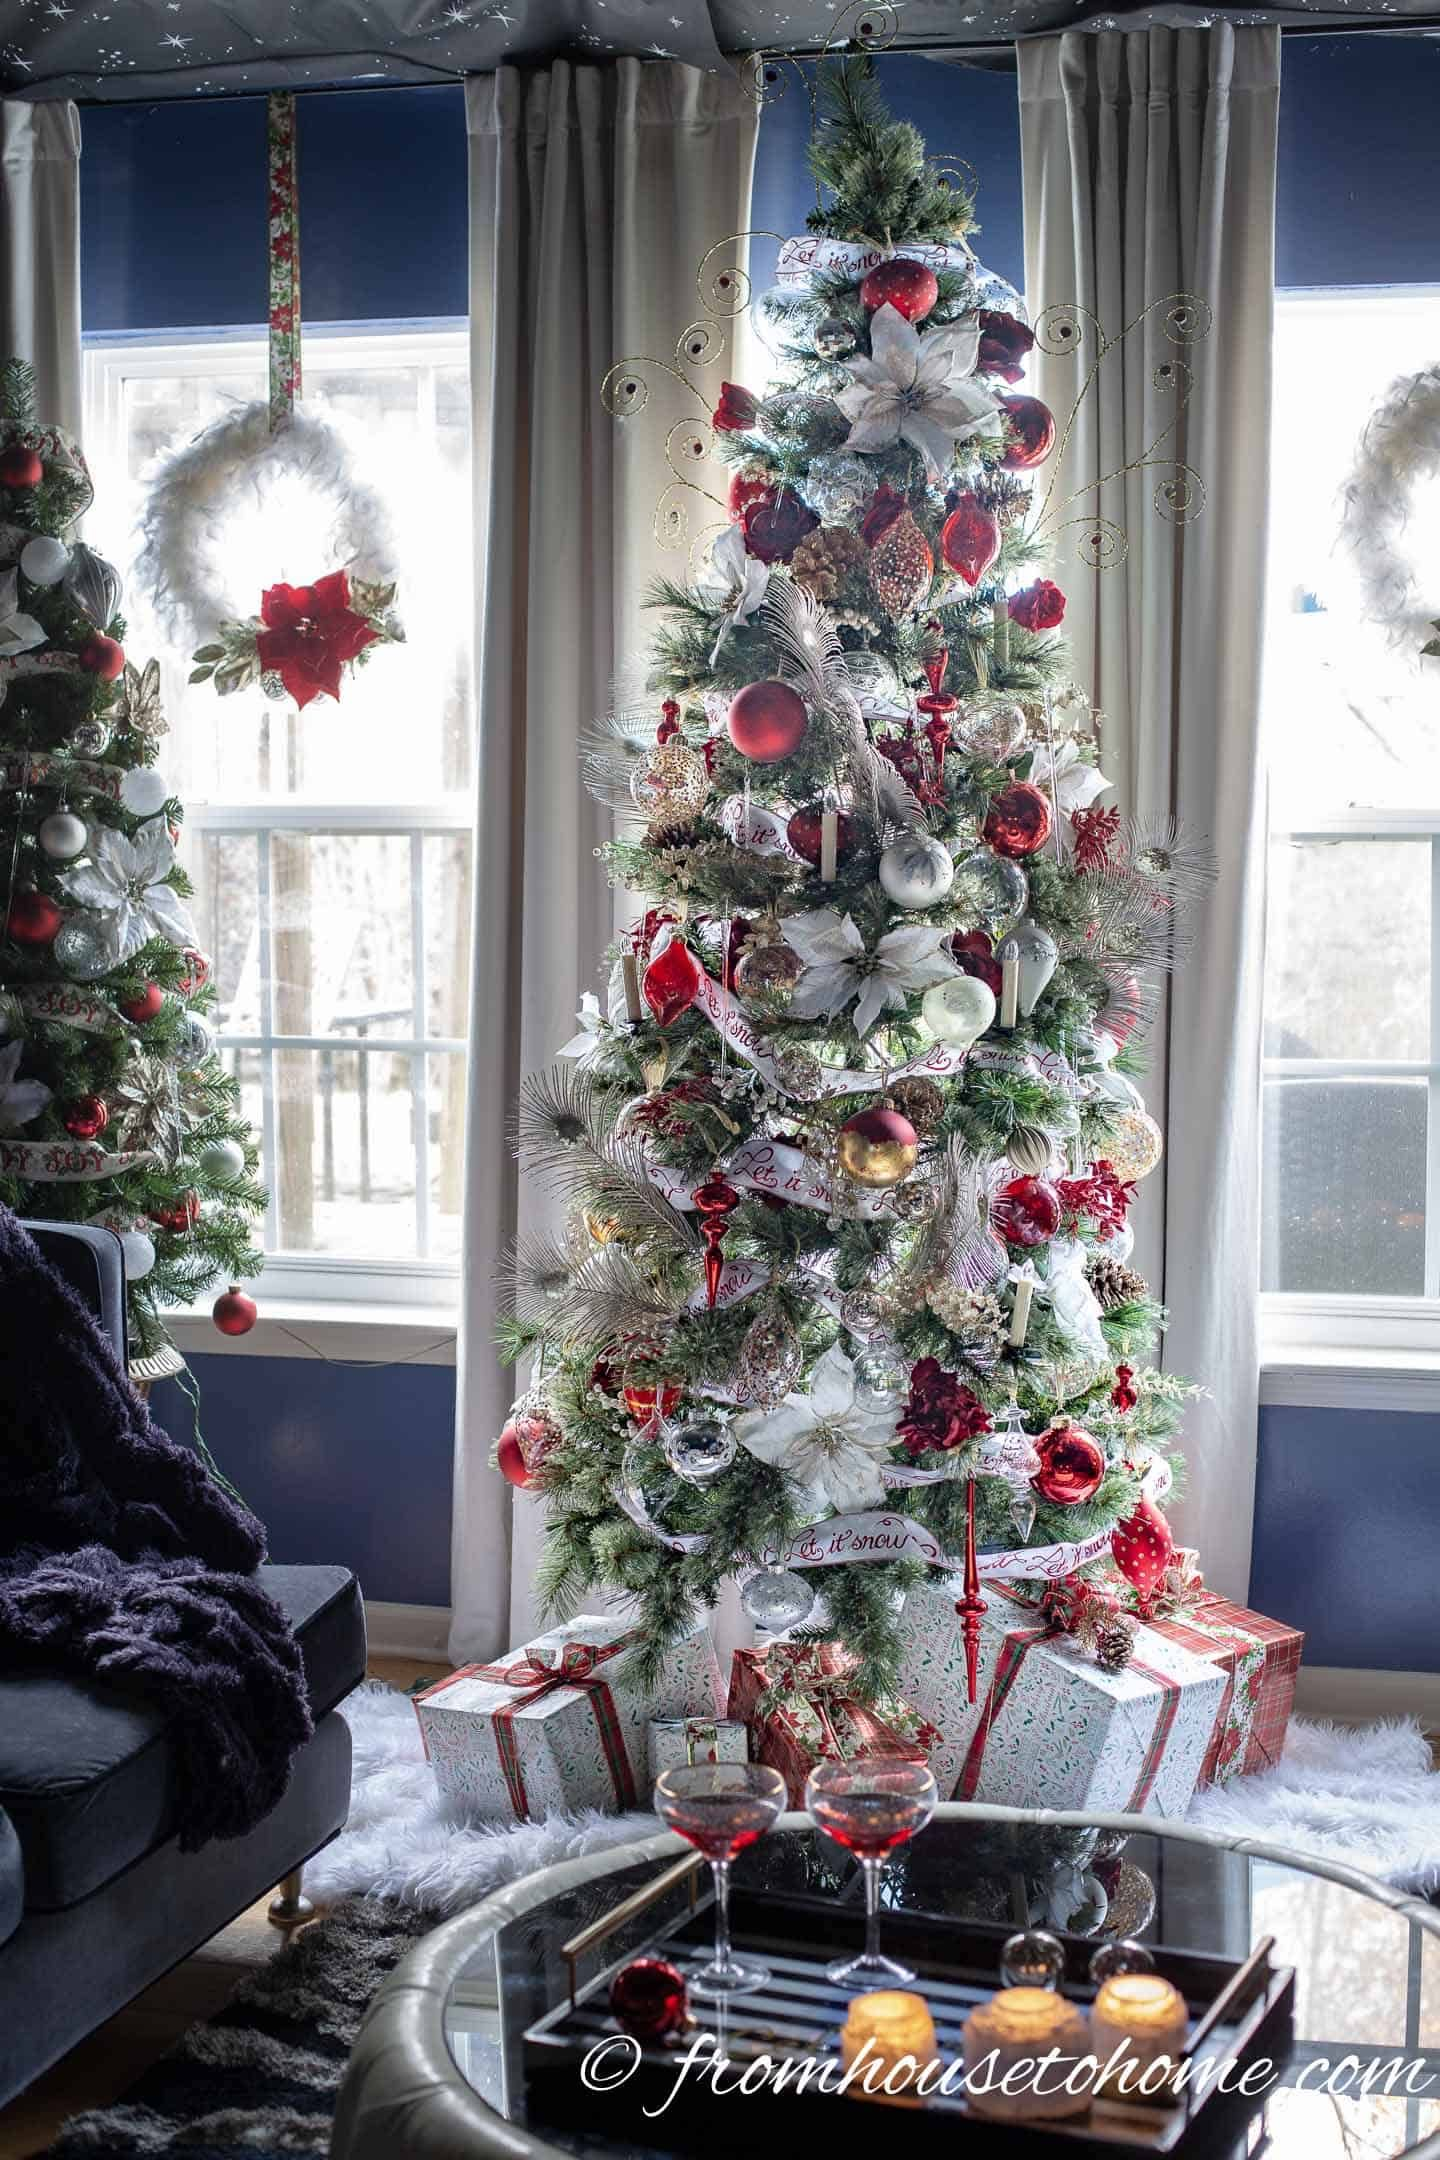 White Red And Gold Christmas Home Decor Ideas And 30 Other Christmas Decorating Ideas Gold Christmas Decorations Red Christmas Decor White Christmas Decor